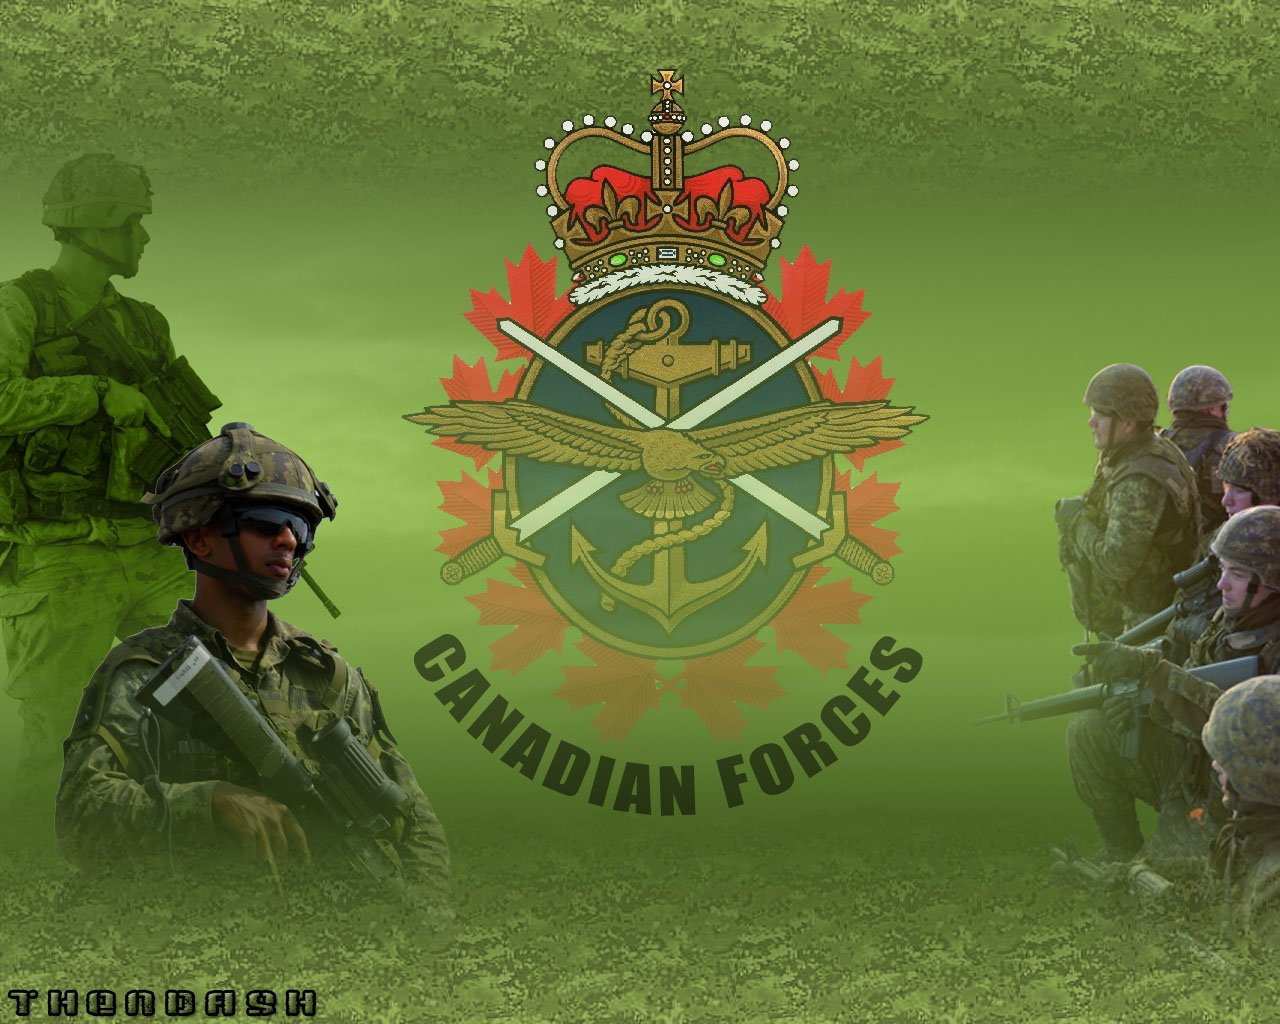 Canadian Forces WallpaperWallpaper About Background wallpaper 1280x1024